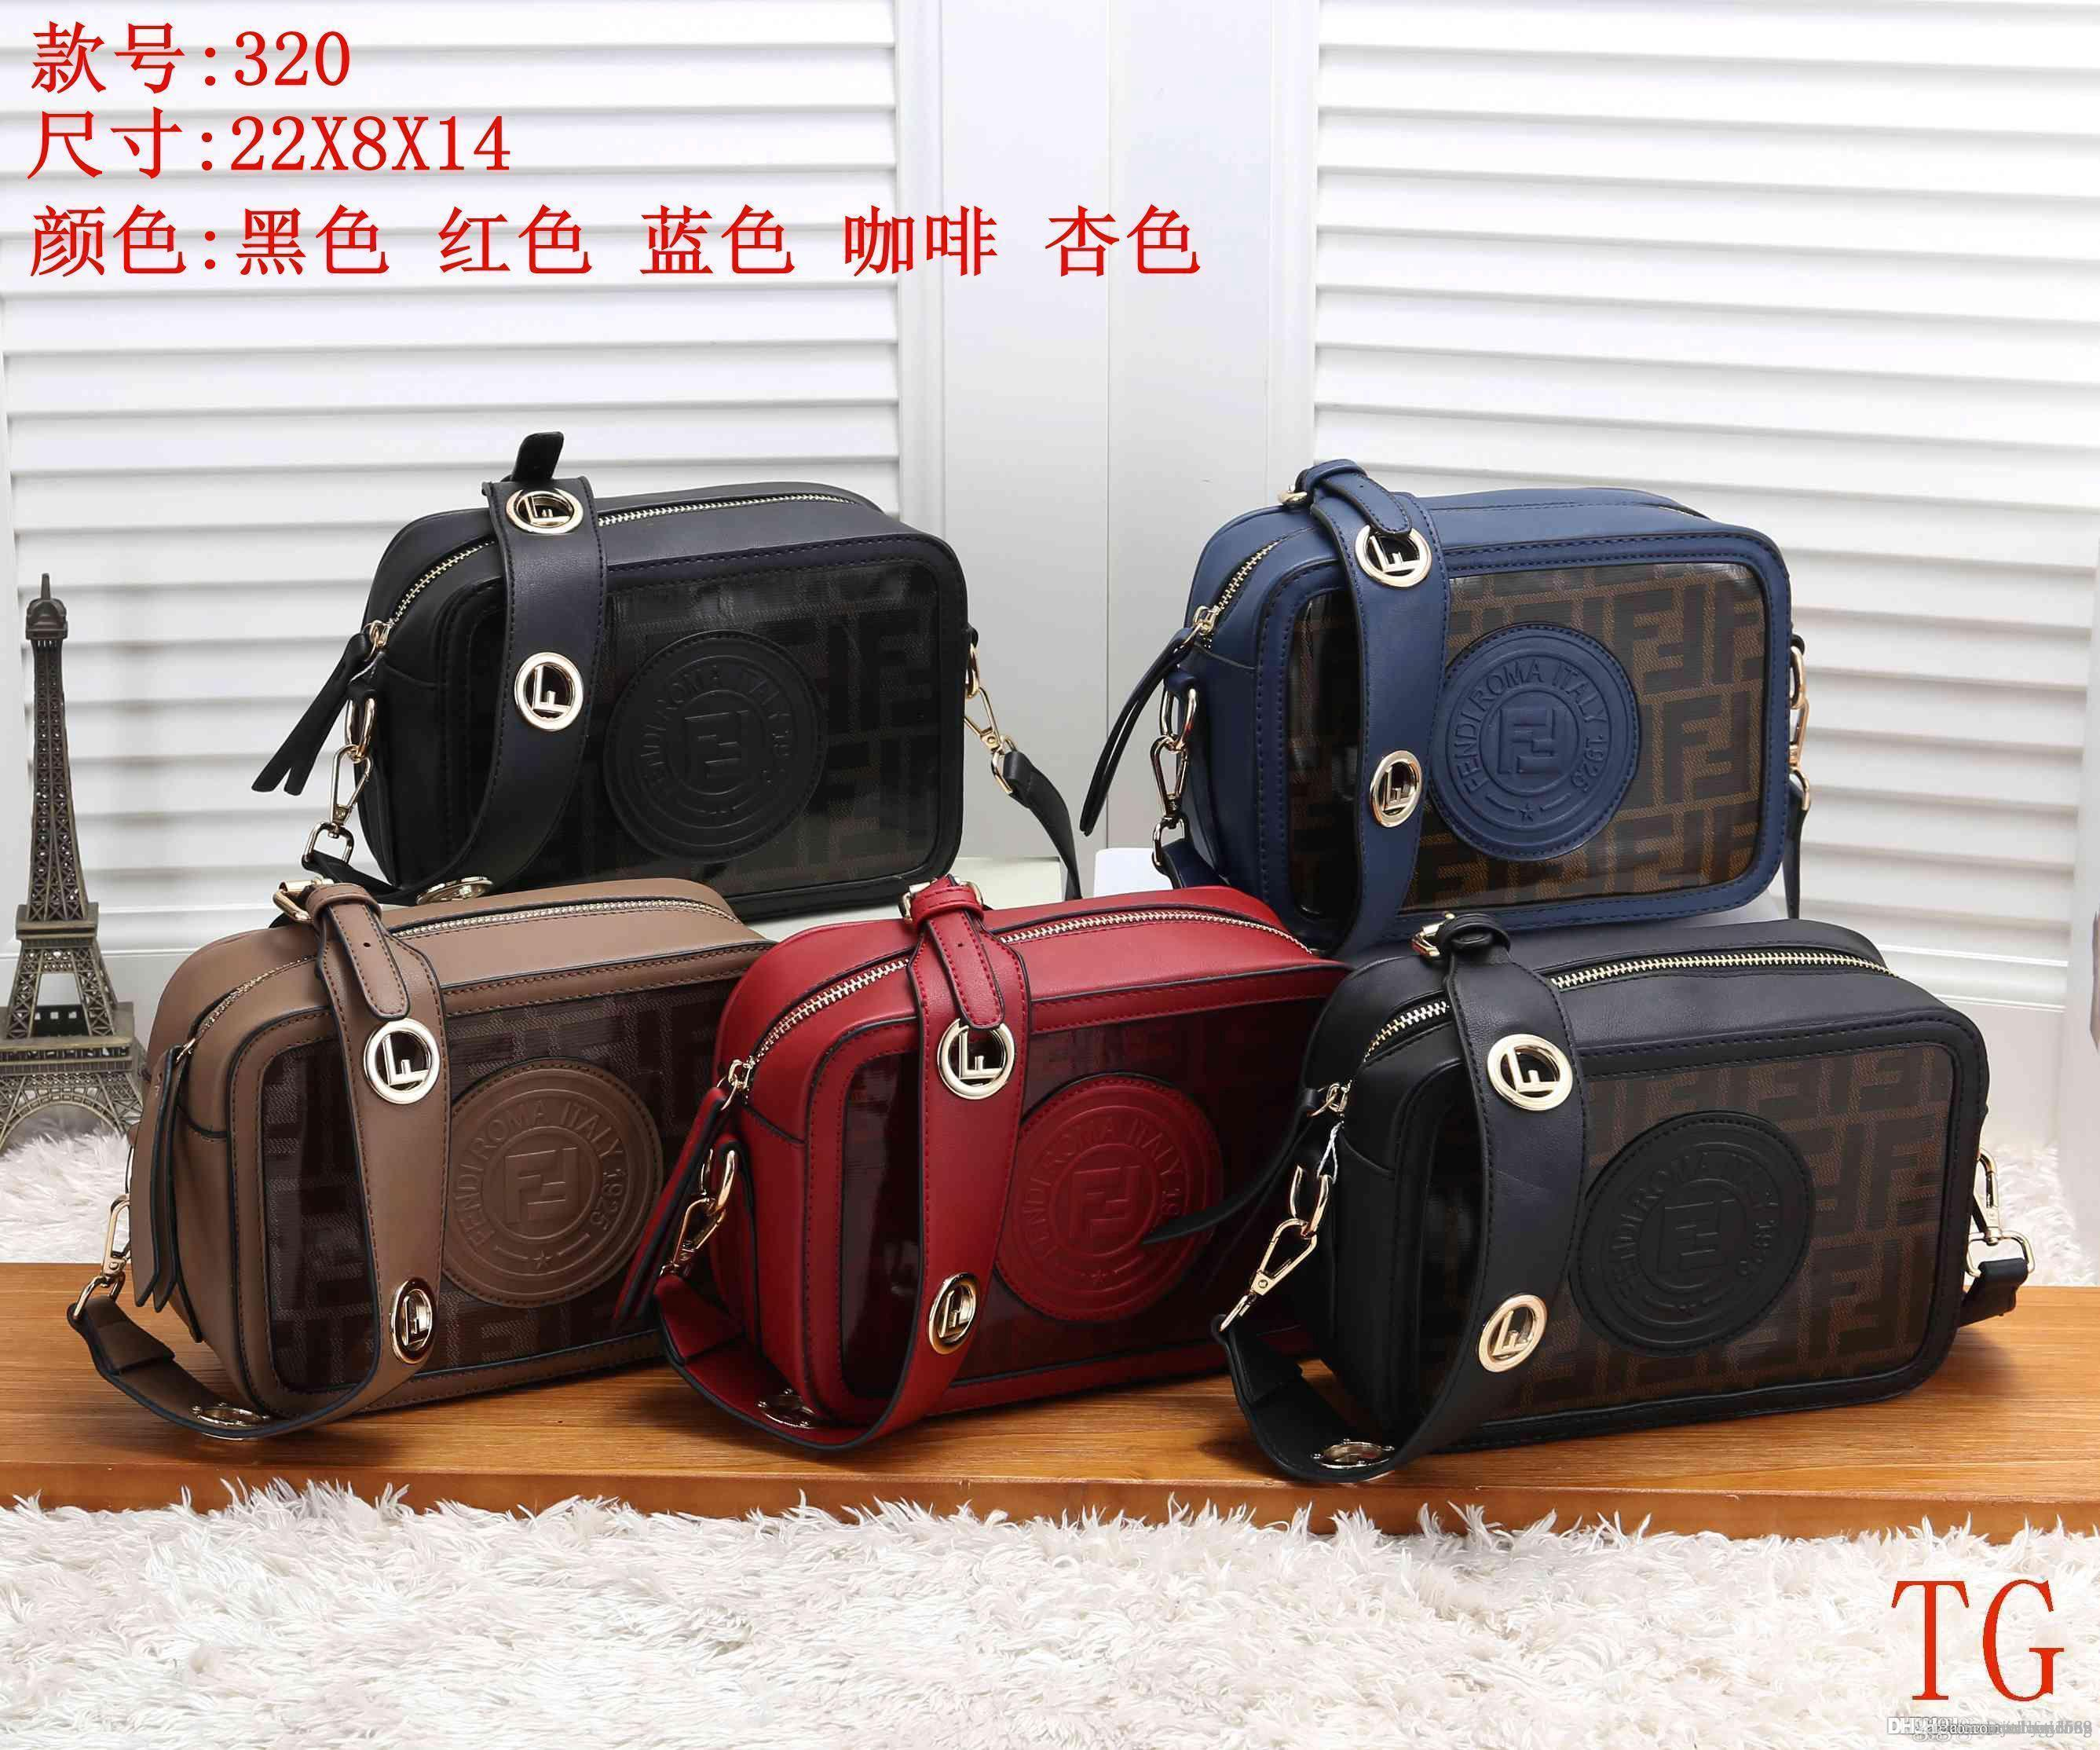 320TG Best price High Quality handbag tote Shoulder backpack bag purse wallet